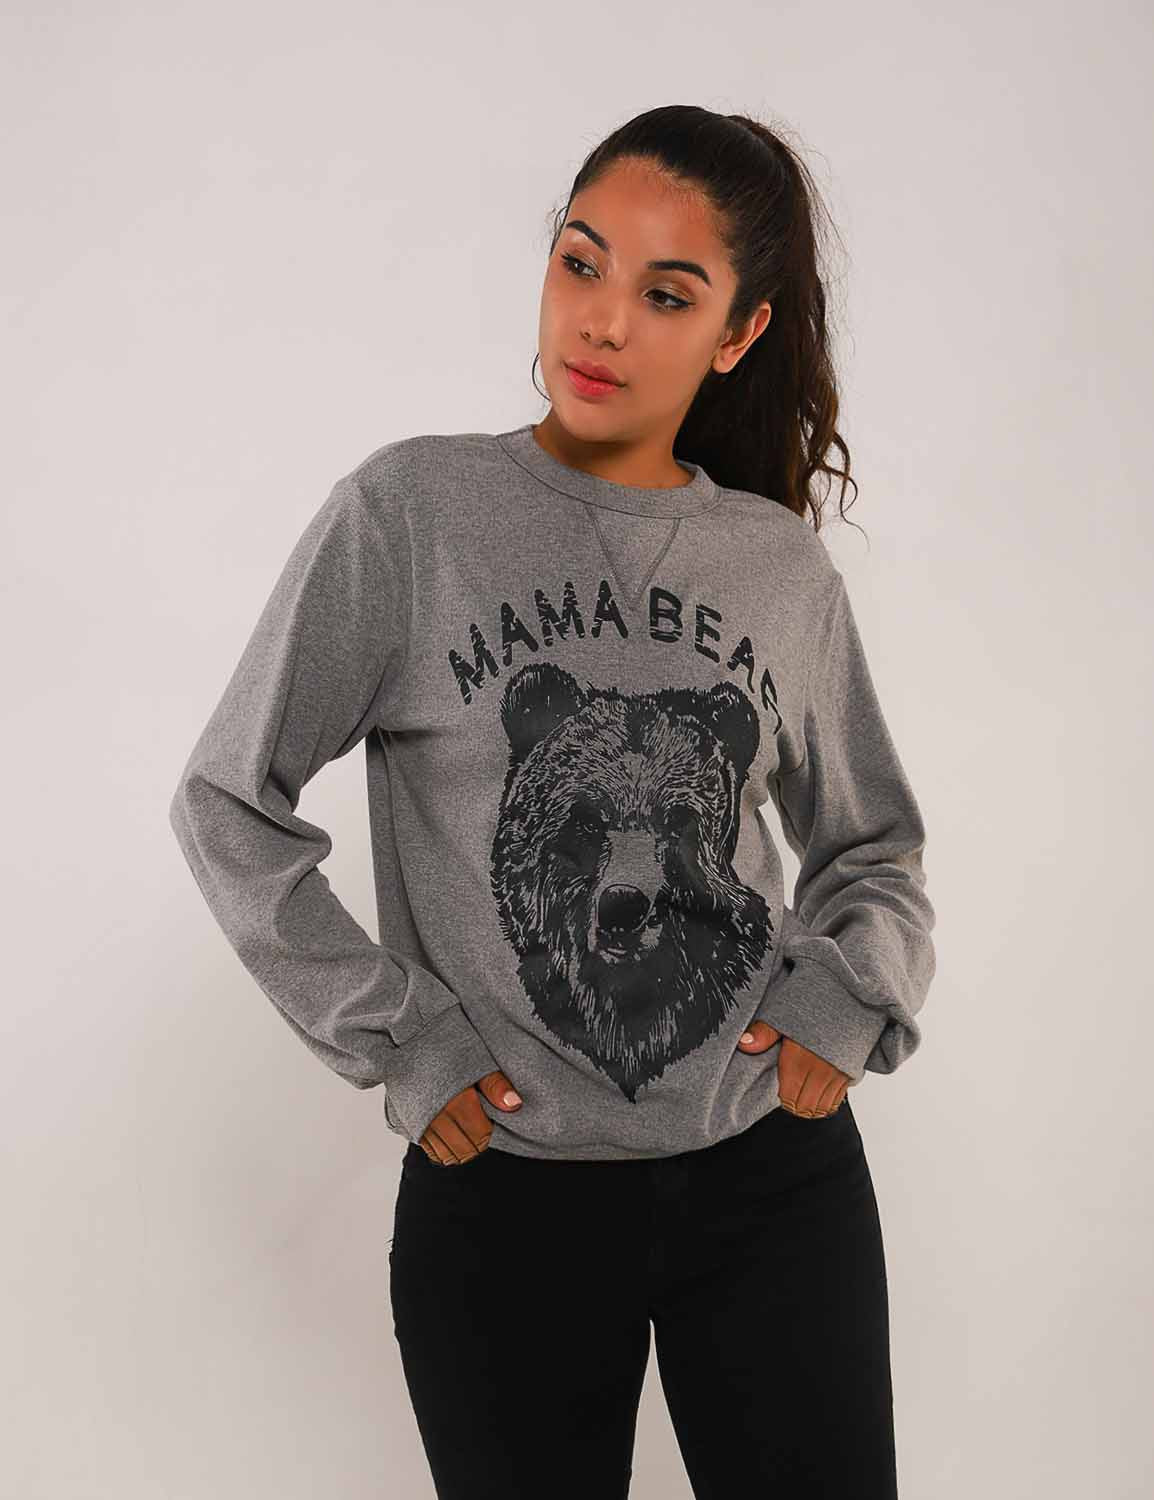 【Only 198 Left】Mama Bear Print Drop Shoulder Sweatshirt